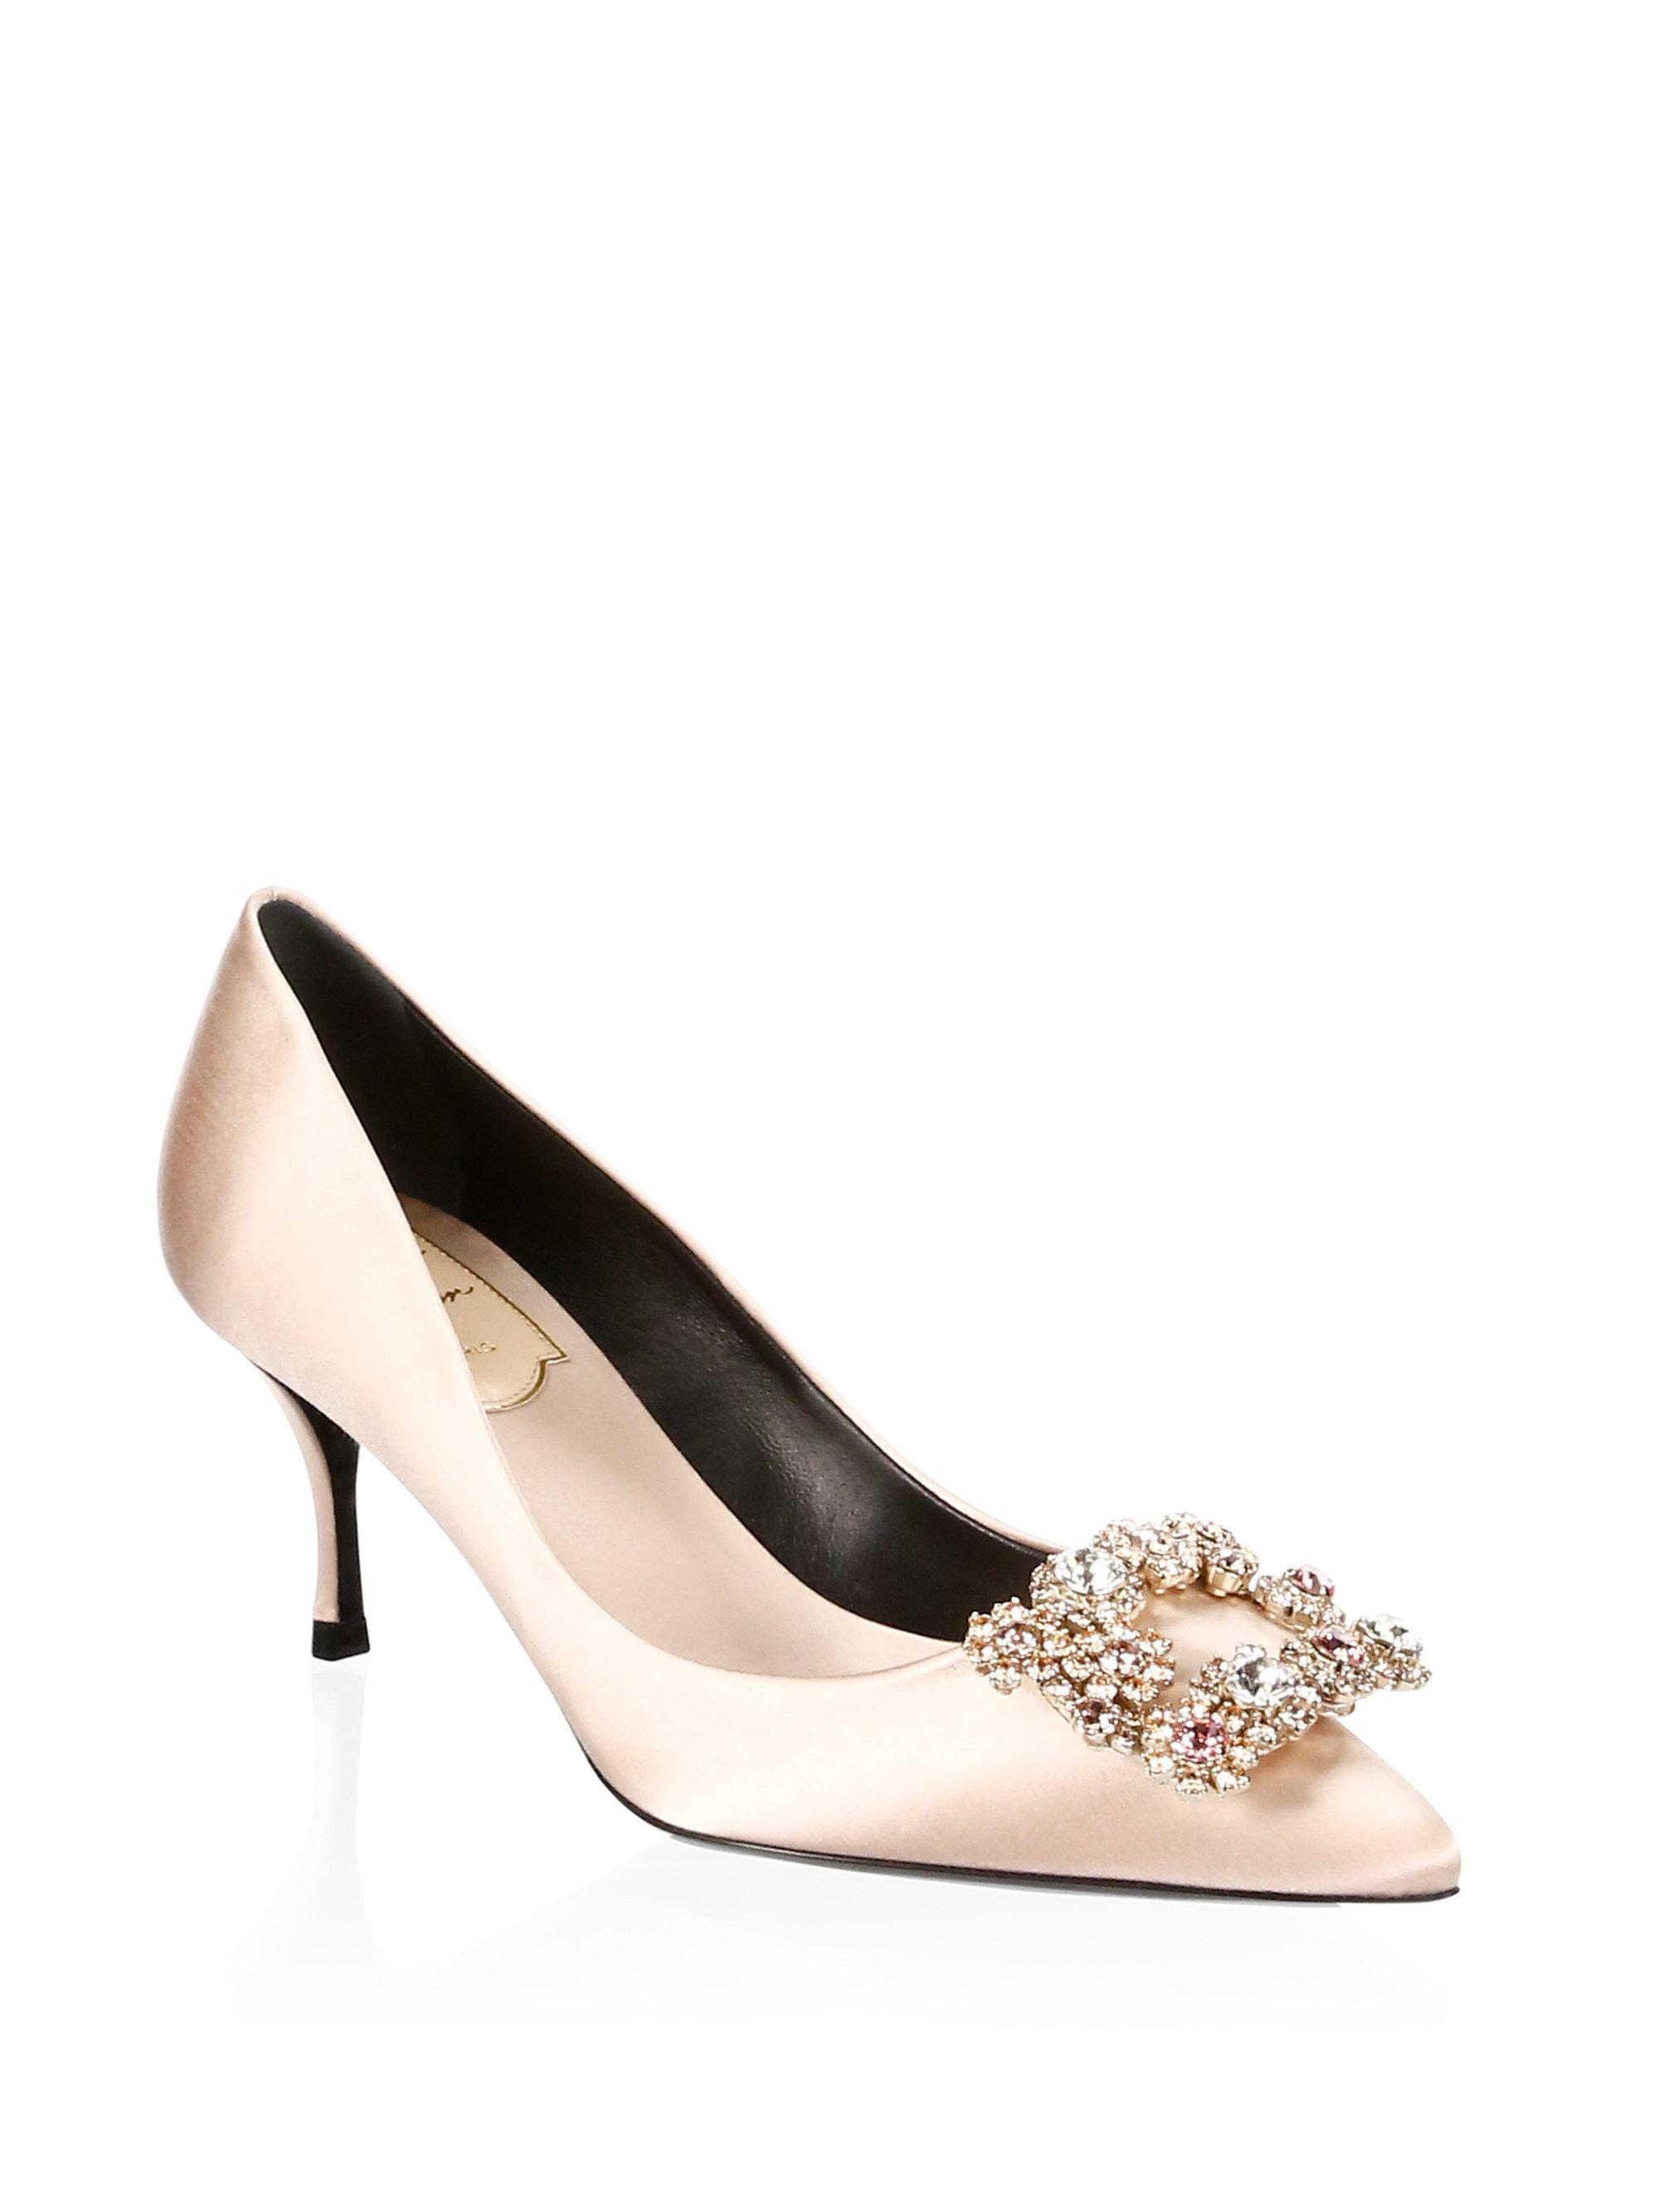 largest supplier cheap online 100% guaranteed cheap price Roger Vivier Flower Strass satin pumps clearance shop AOEgV8g